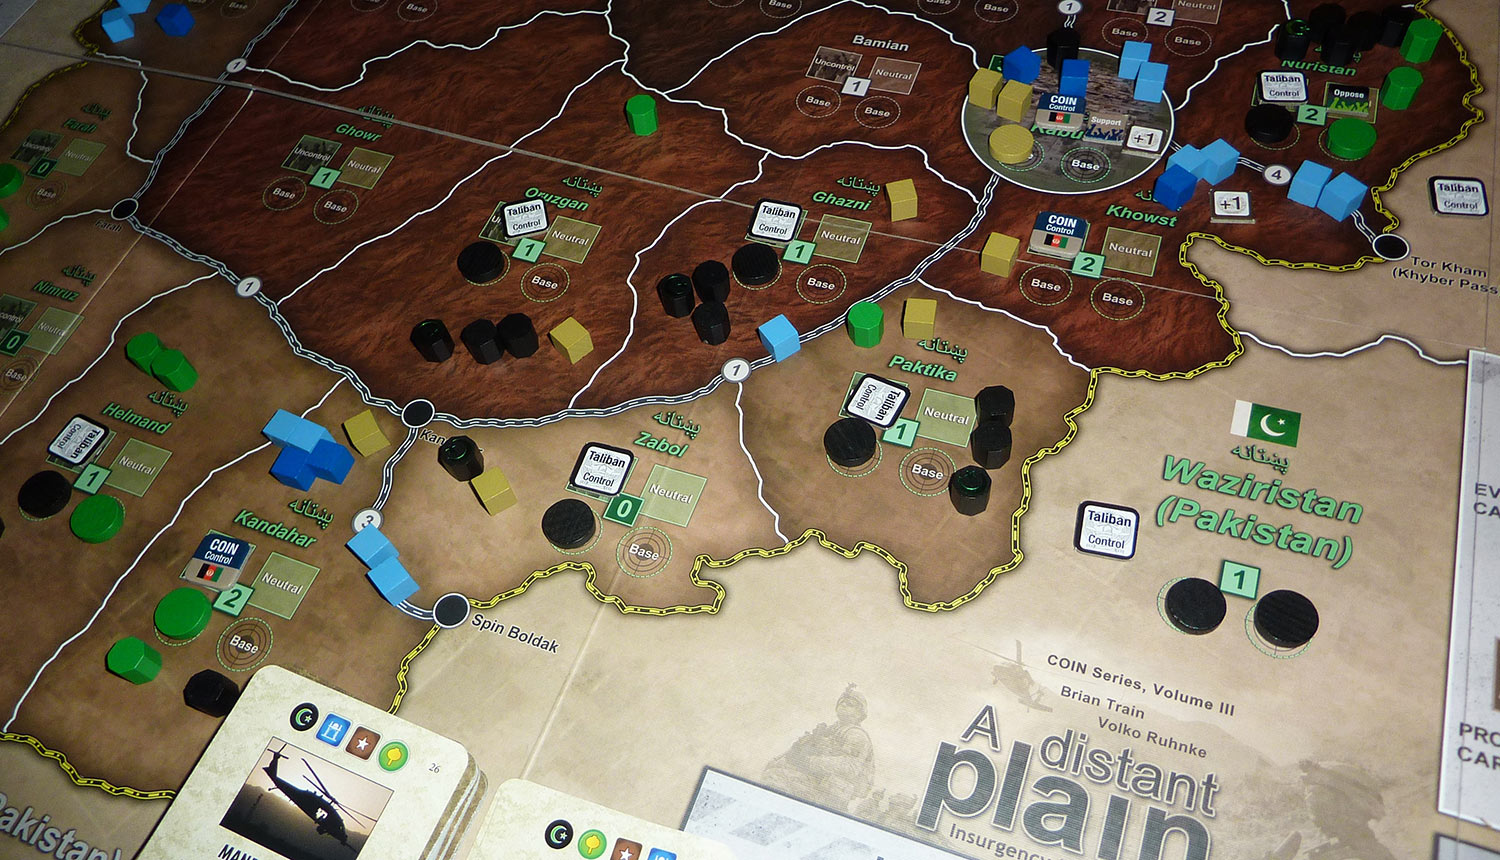 Review: A Distant Plain